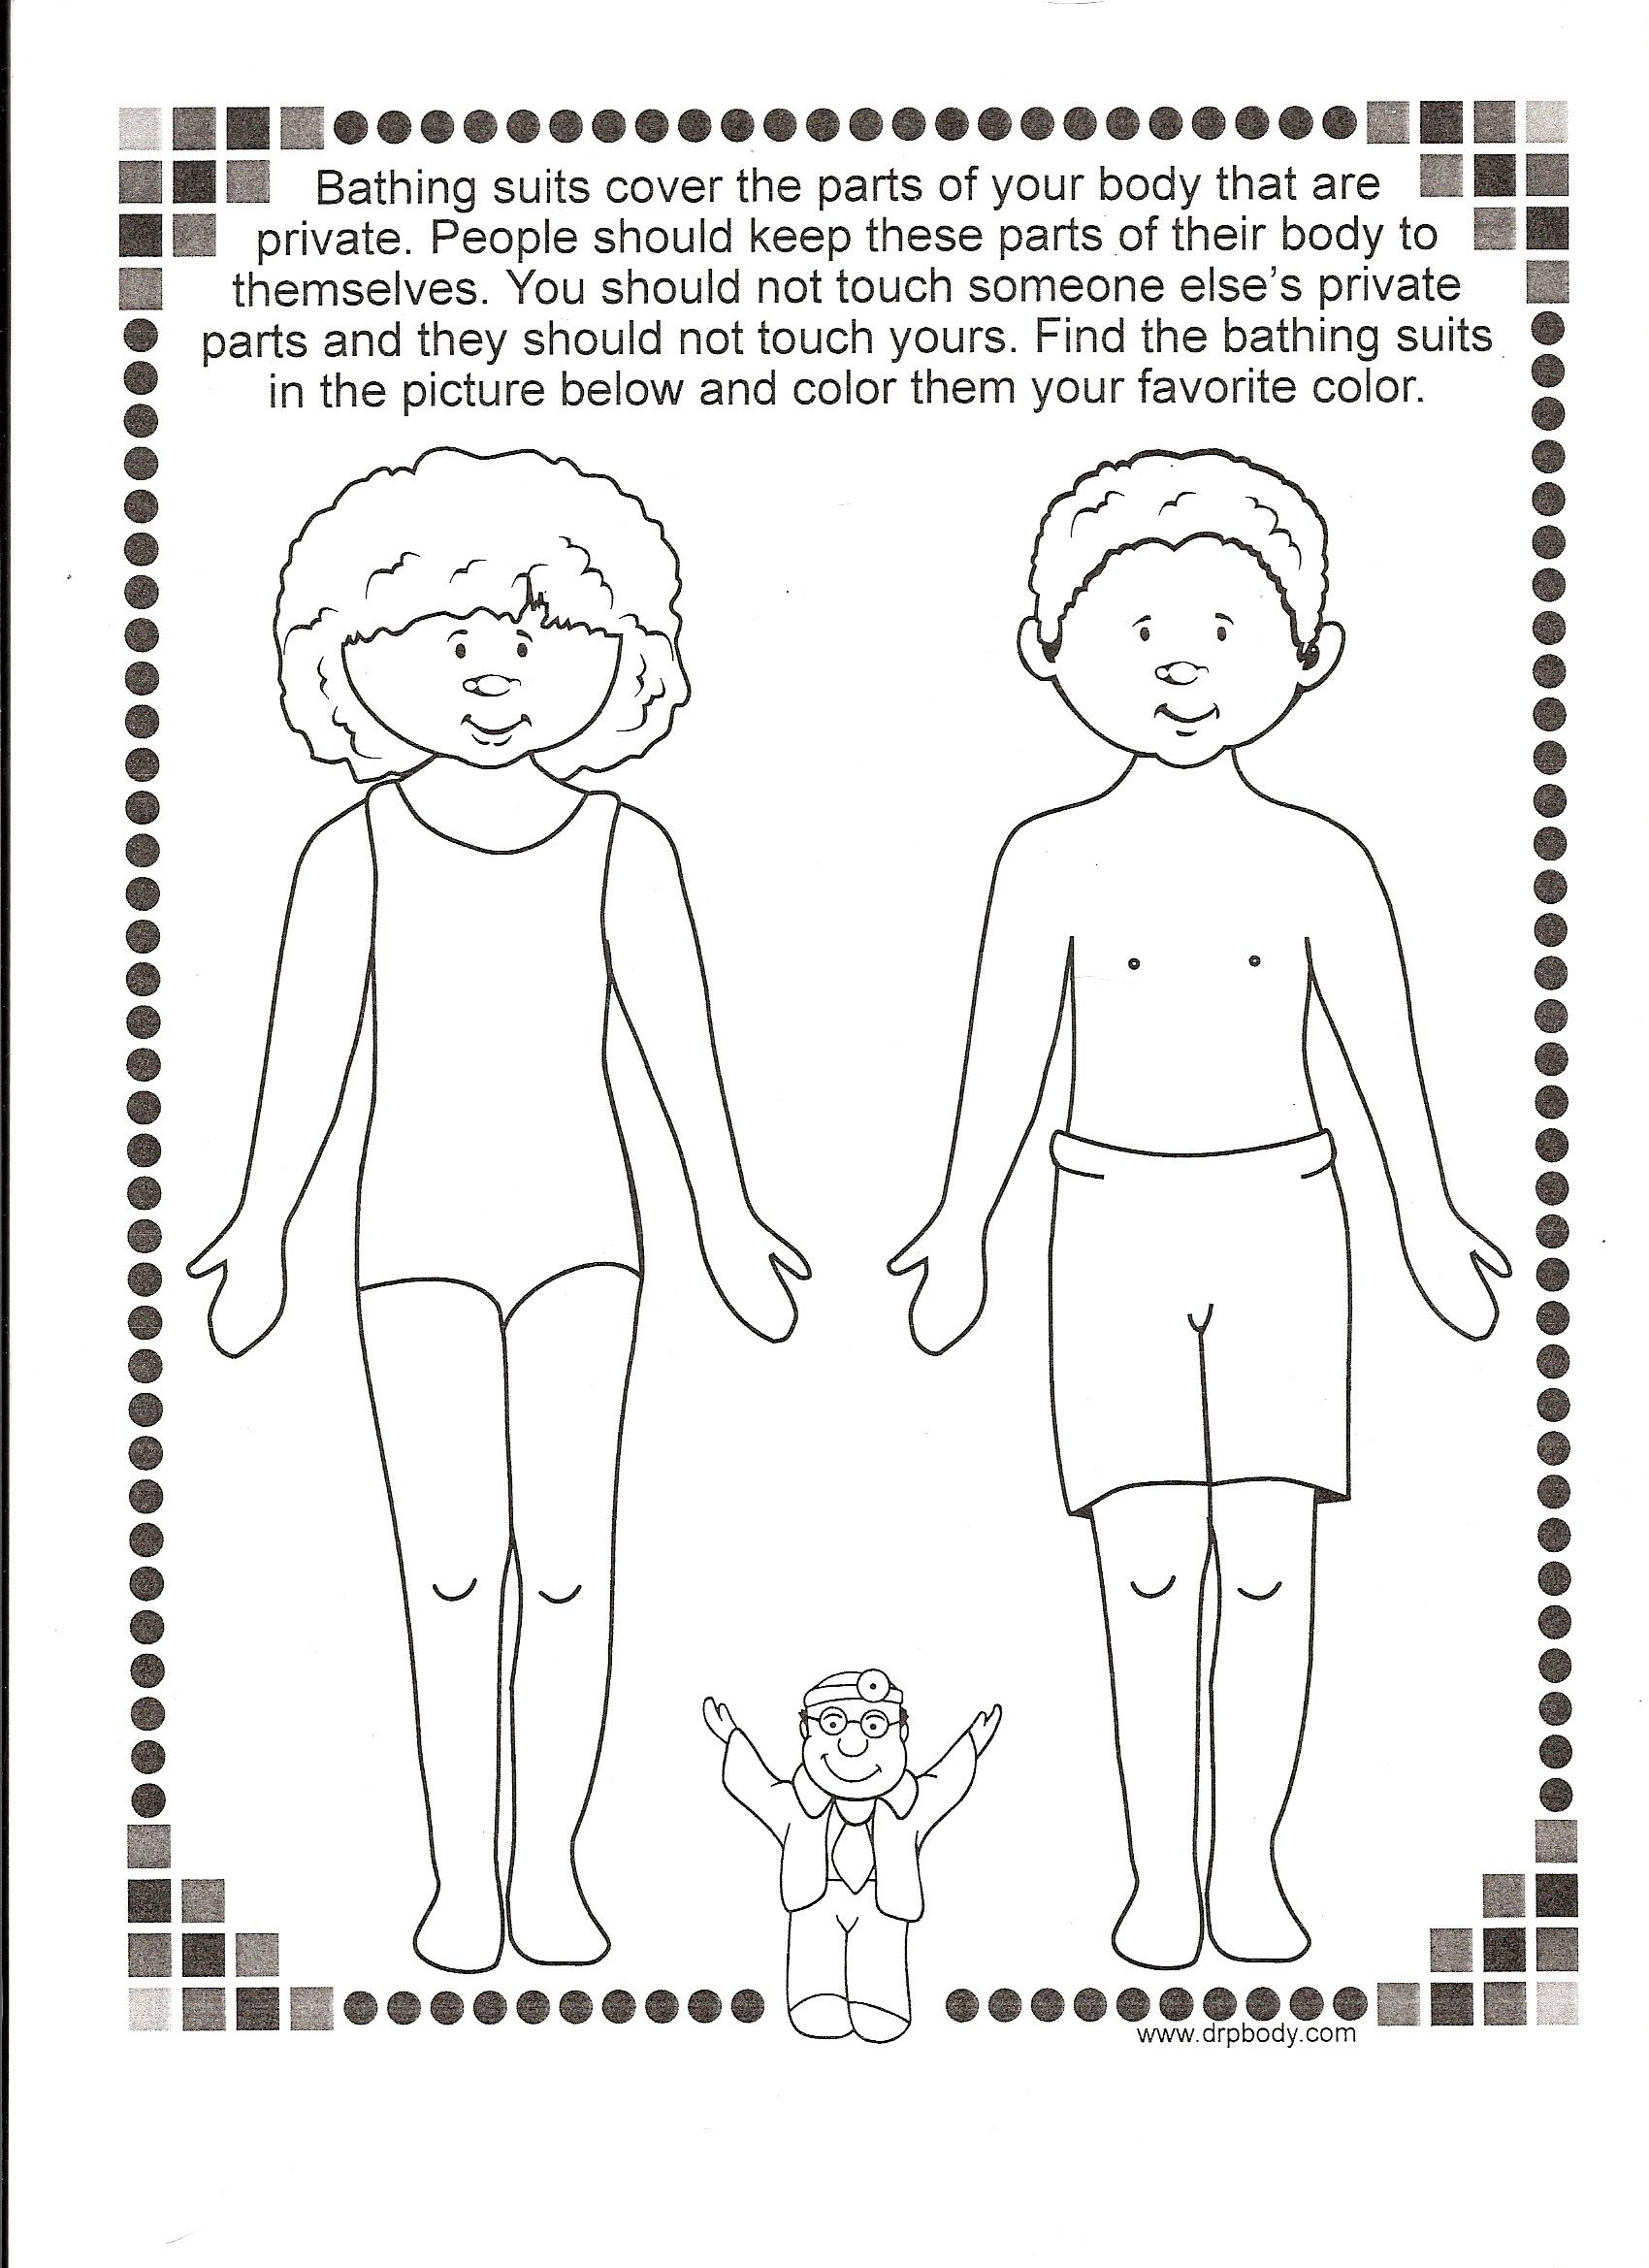 worksheet Safe Touching For Children Worksheets body worksheet colouring pages therapy pinterest worksheets pages